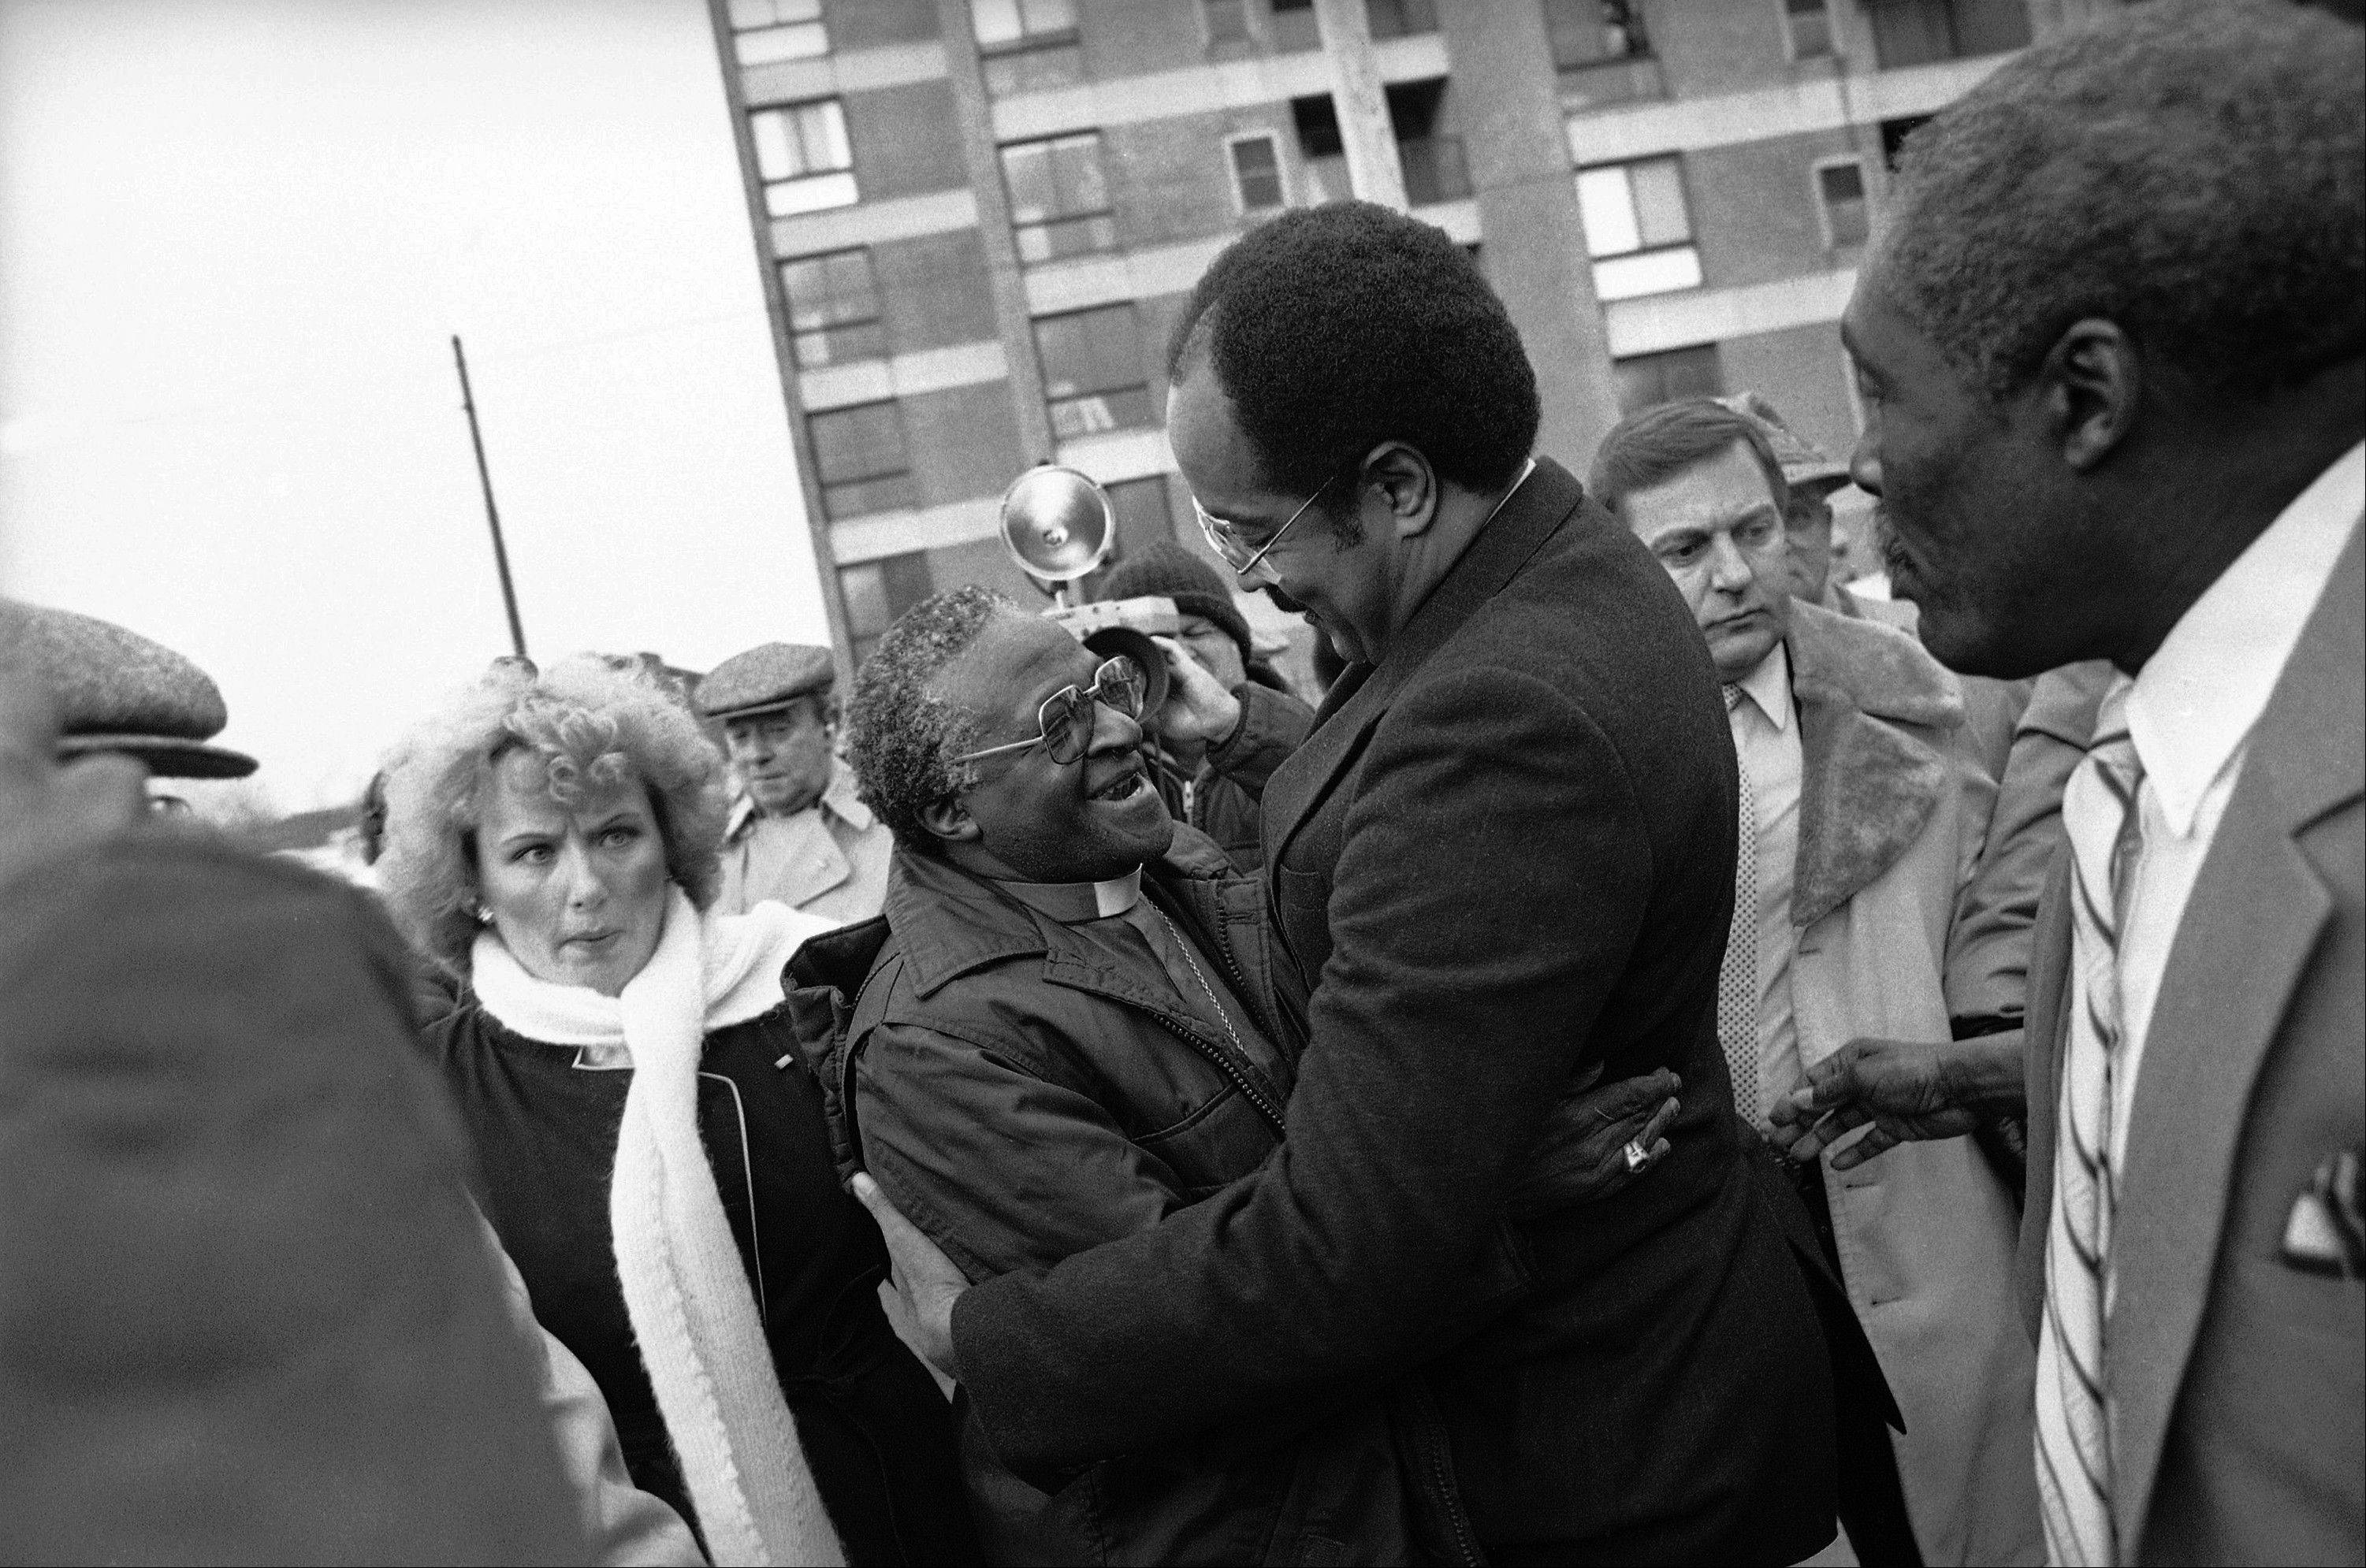 In this Jan. 14, 1986, file photo, Bishop Desmond Tutu, left, is greeted by Rep. William H. Gray III, who just returned from a trip to South Africa, outside Philadelphia's Bright Hope Baptist Church. Gray, who rose to influential positions in Congress while remaining pastor of his north Philadelphia church for 3� decades, has died, a family spokesman said Monday, July 1. He was 71.